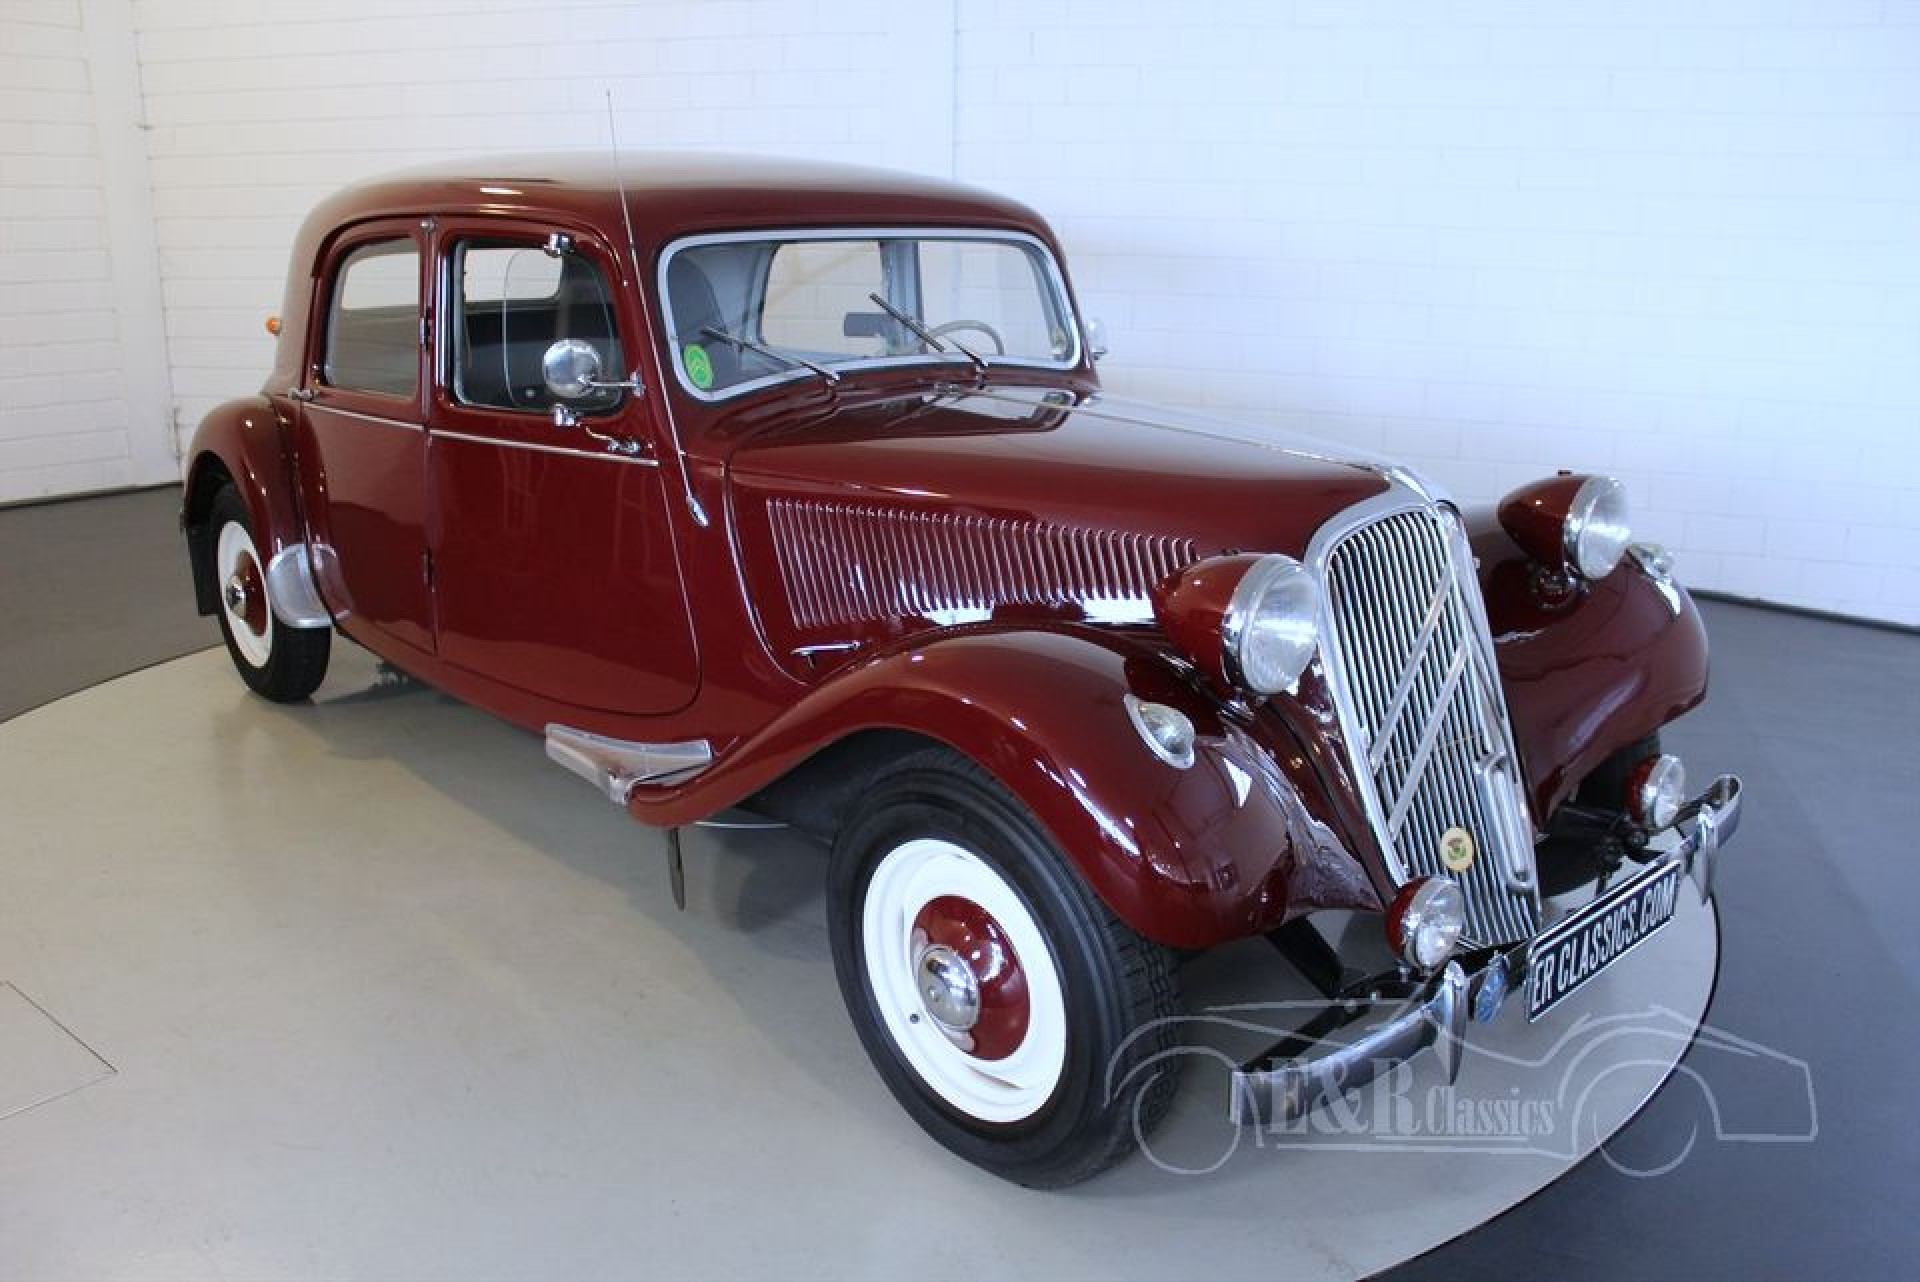 citro n traction avant 11b 1953 vendre erclassics. Black Bedroom Furniture Sets. Home Design Ideas